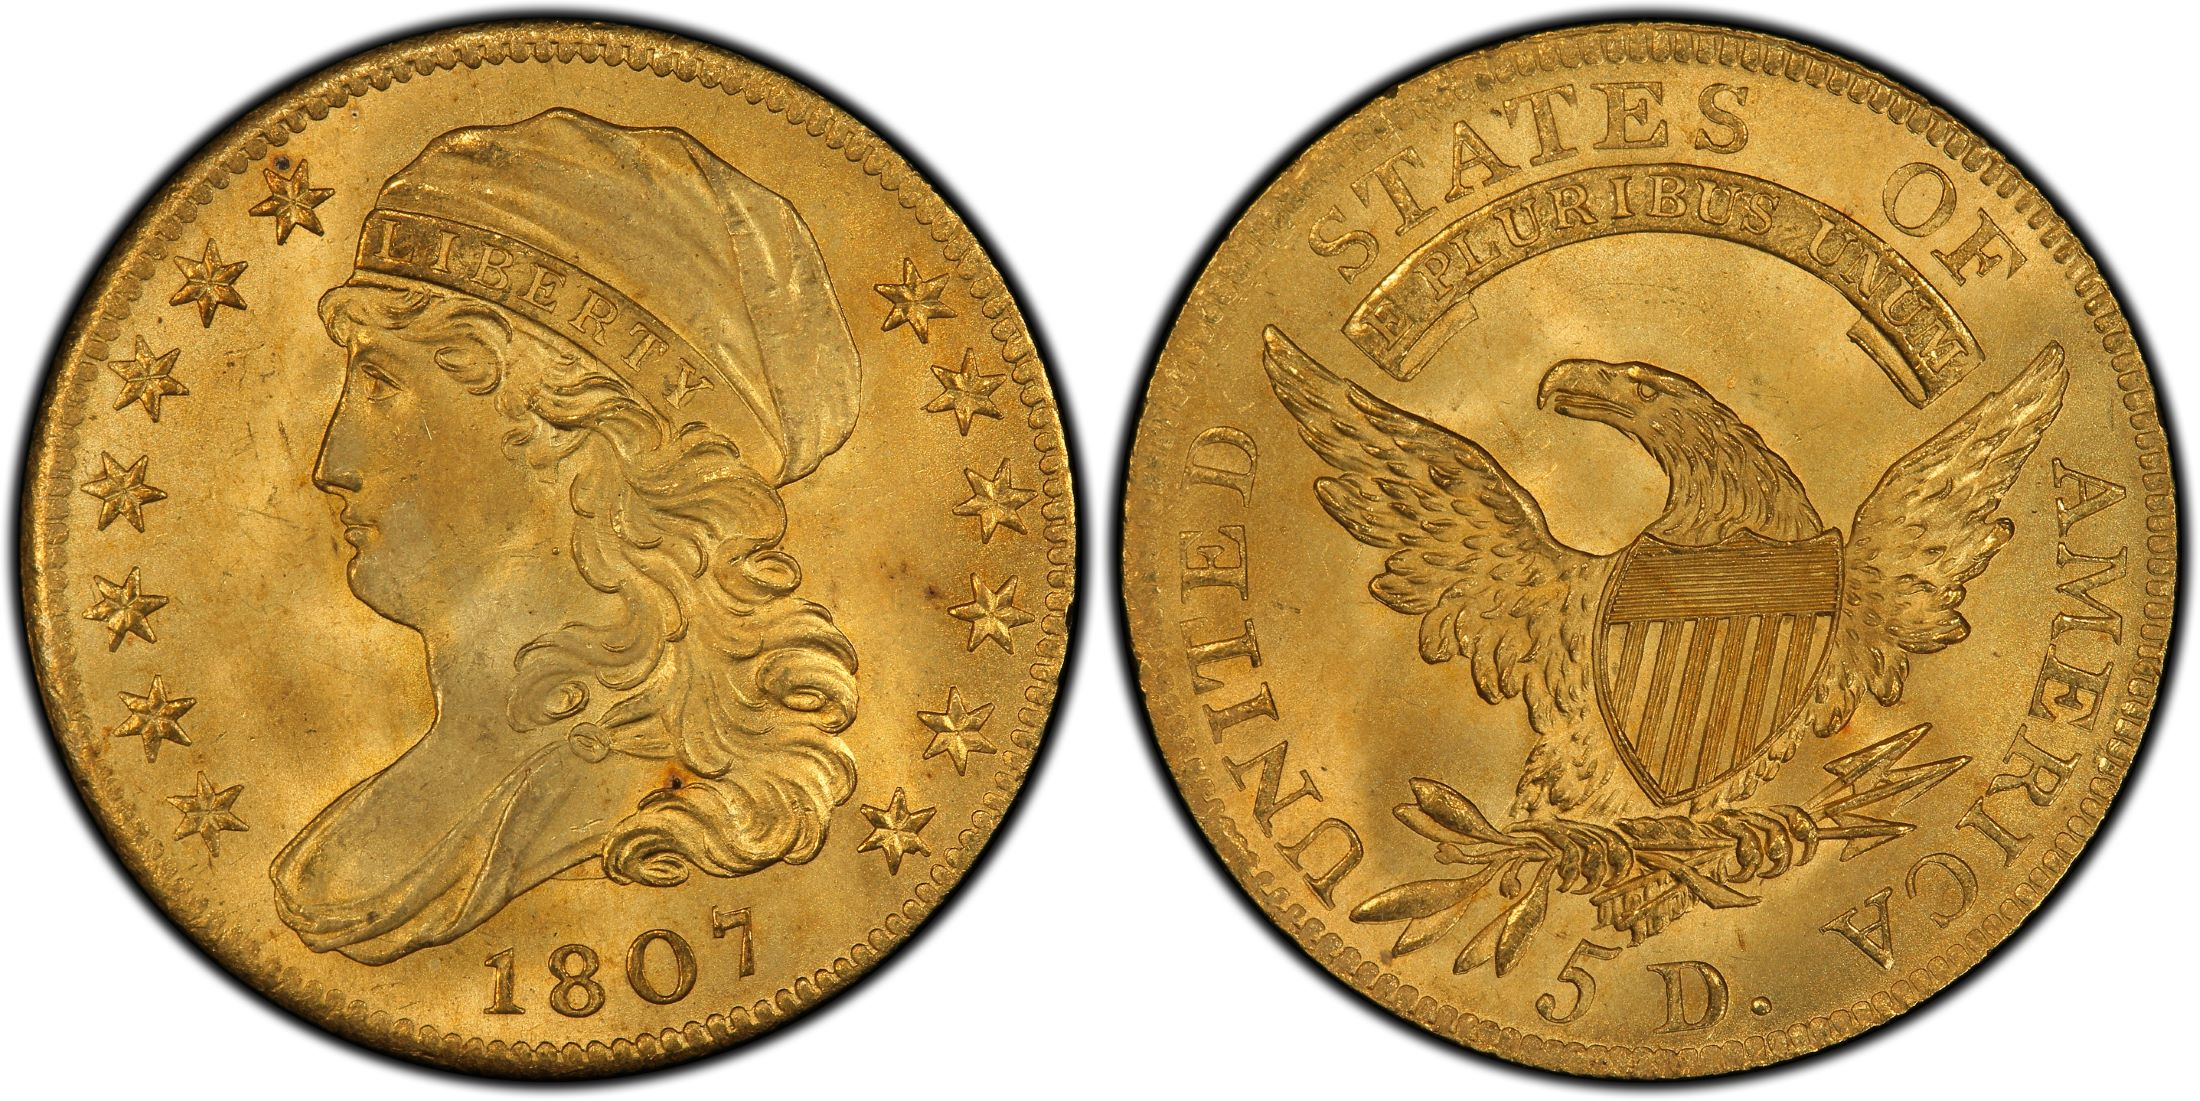 Capped Bust $5 (1807-1834)